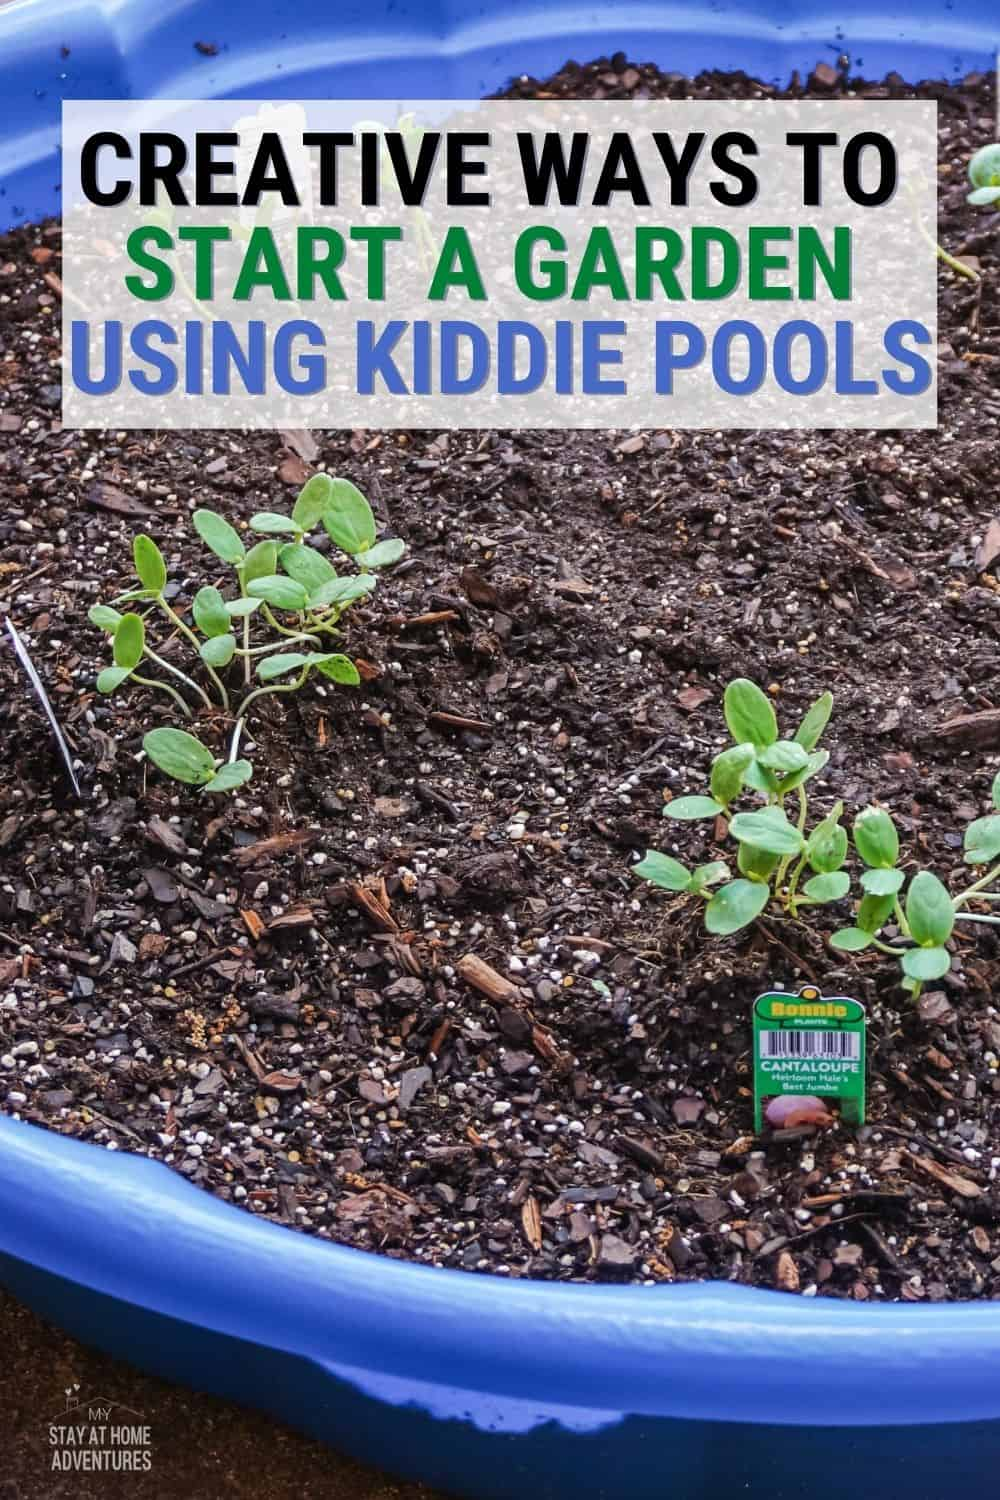 Are you looking for an incredibly inexpensive way to garden? You can build your own kiddie pool garden for as little as $10! via @mystayathome